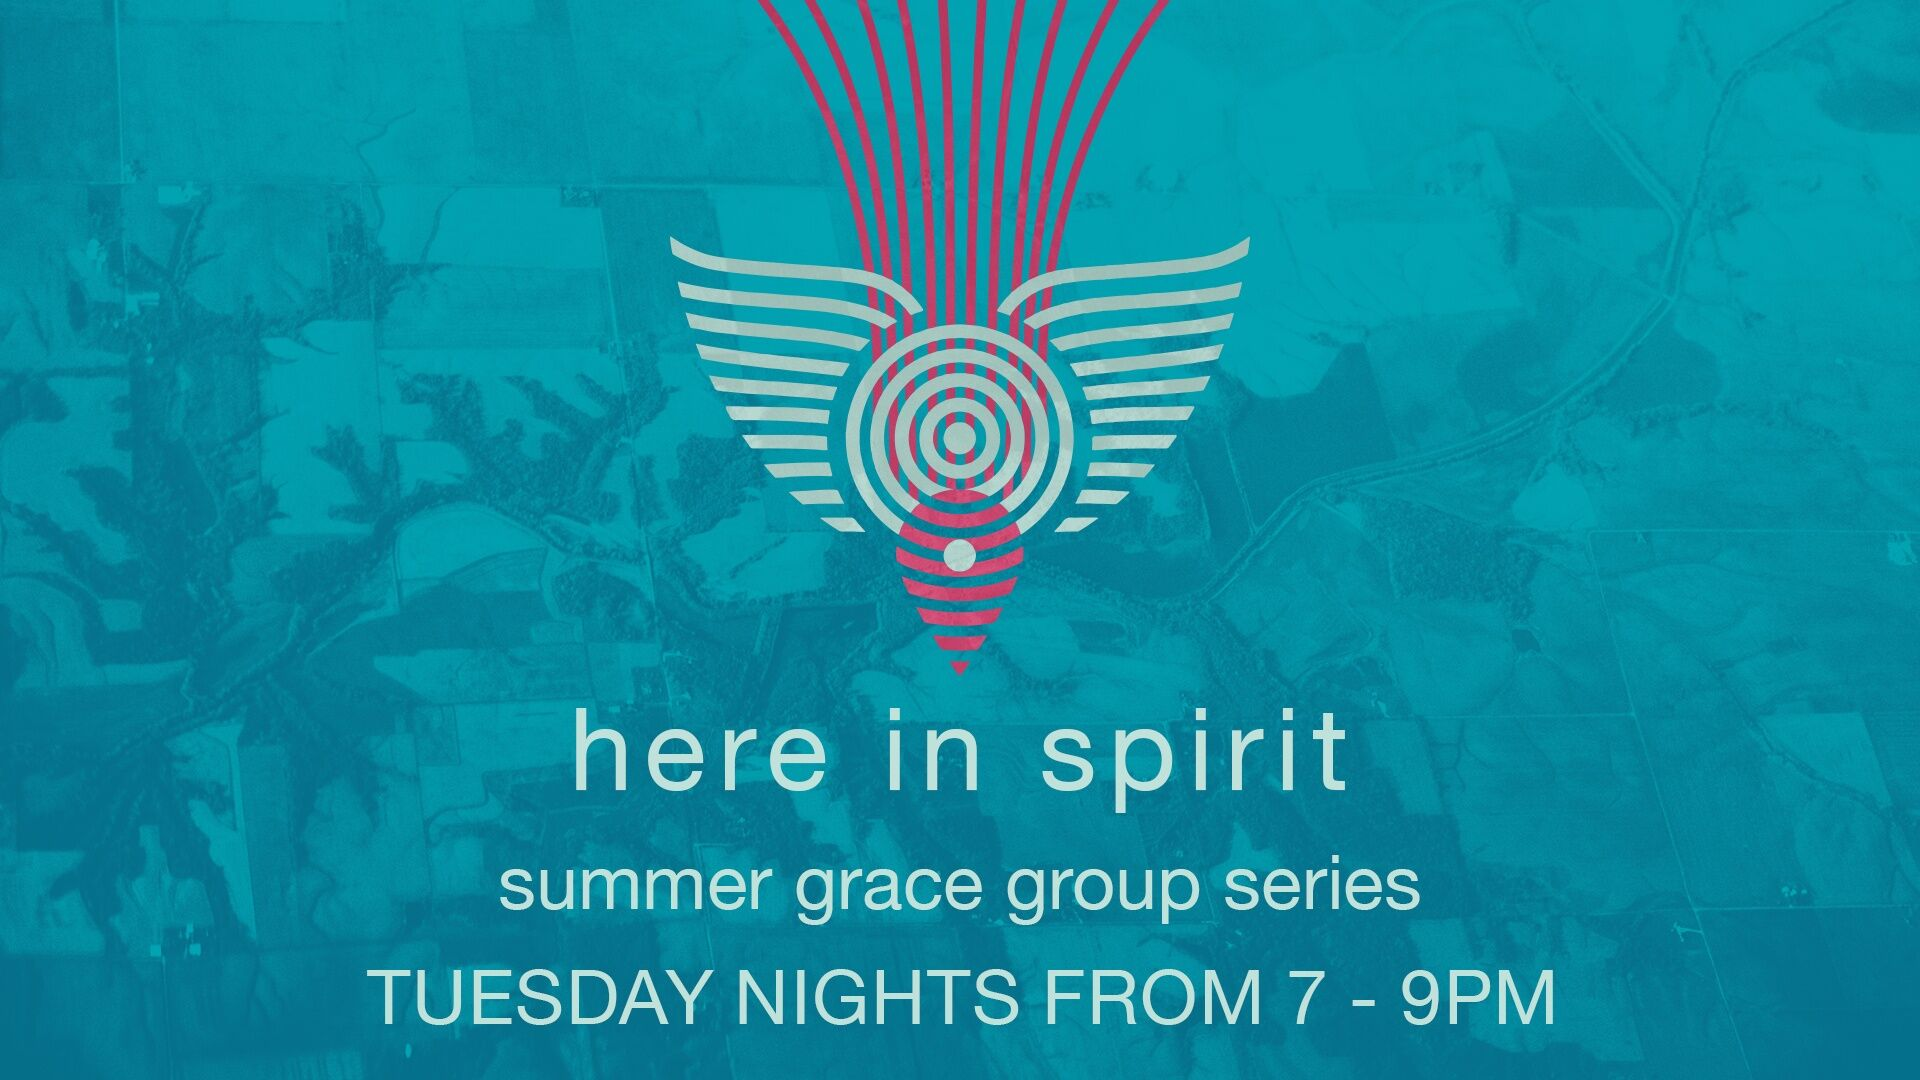 Summer & Fall Combined Grace Group